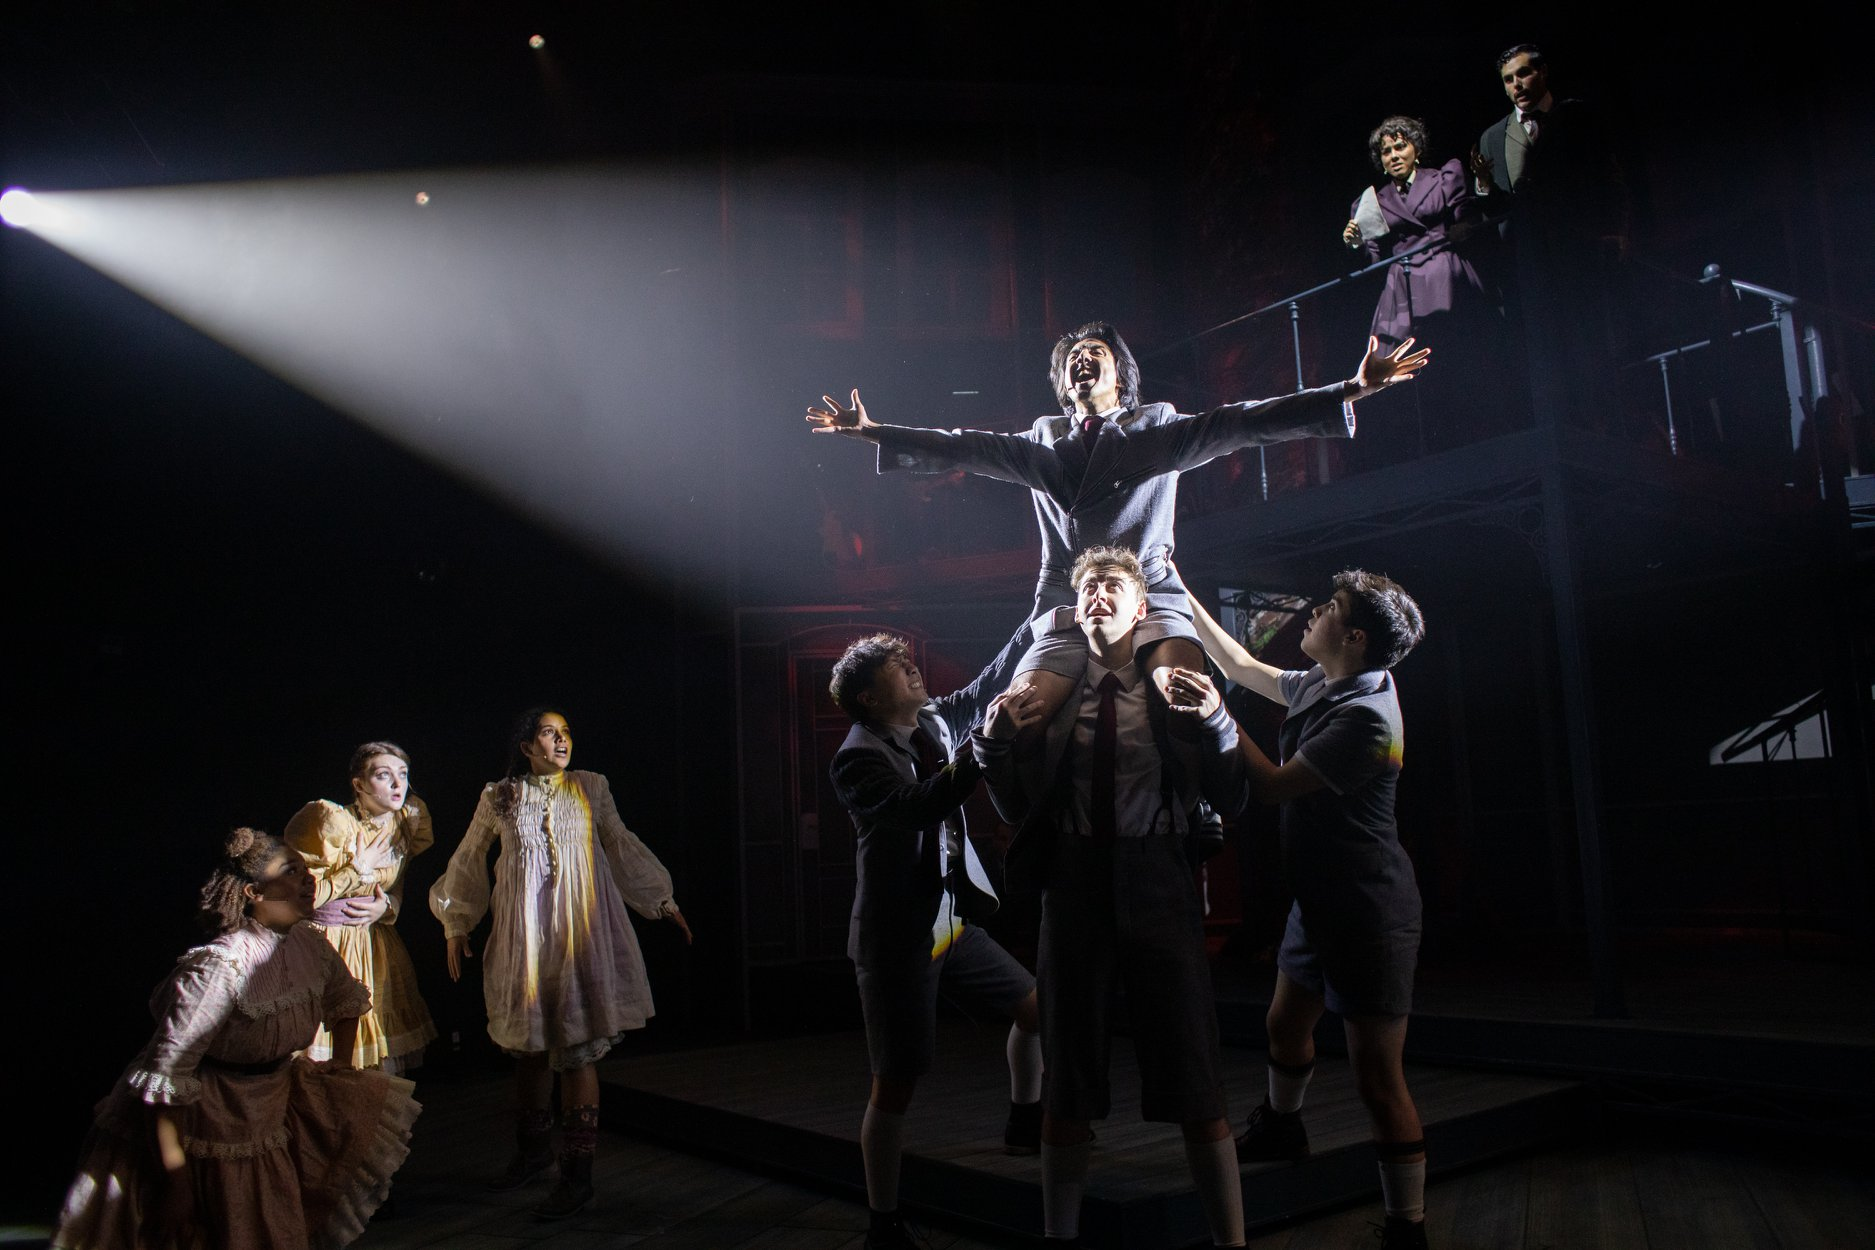 uploads/production_images/spring-awakening-ut-lawrence-peart-2019/sa_07_lawrence_peart.jpg